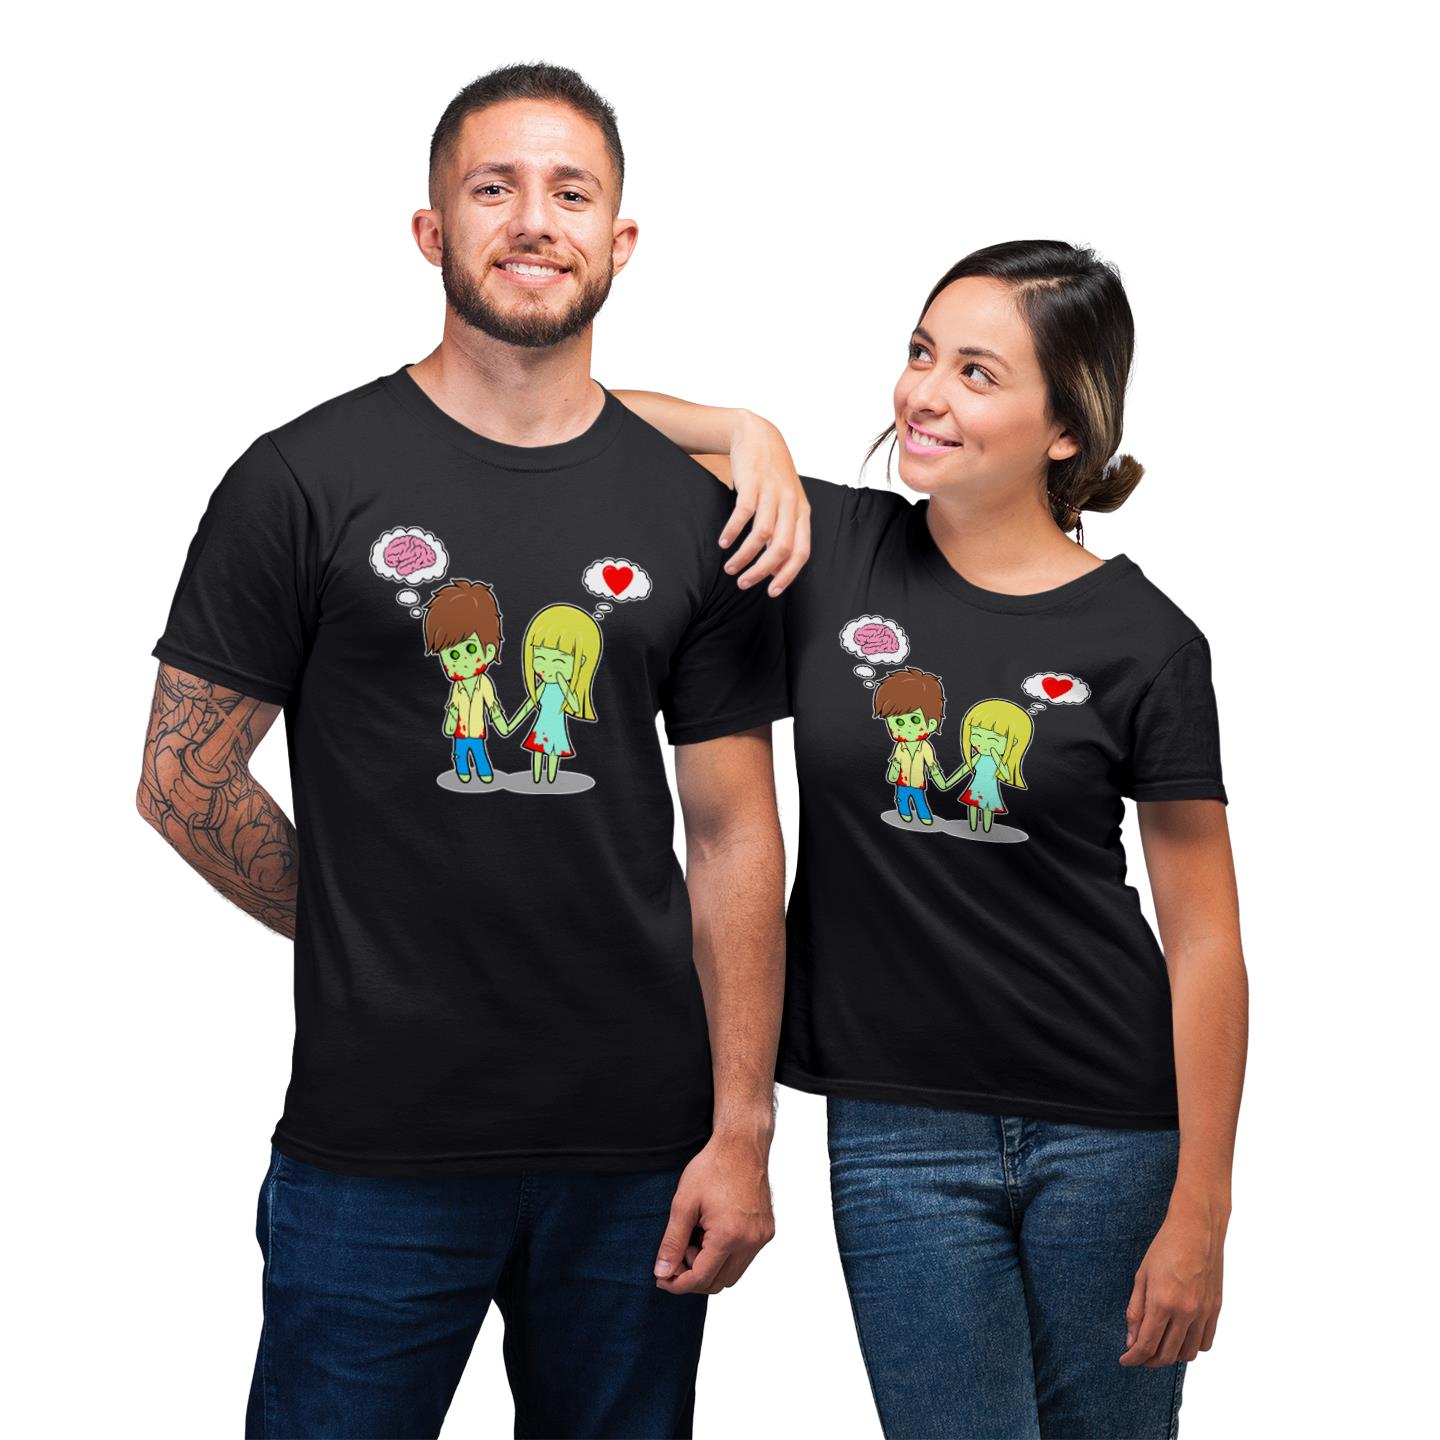 Adorable Zombie For Matching Couple T-Shirt